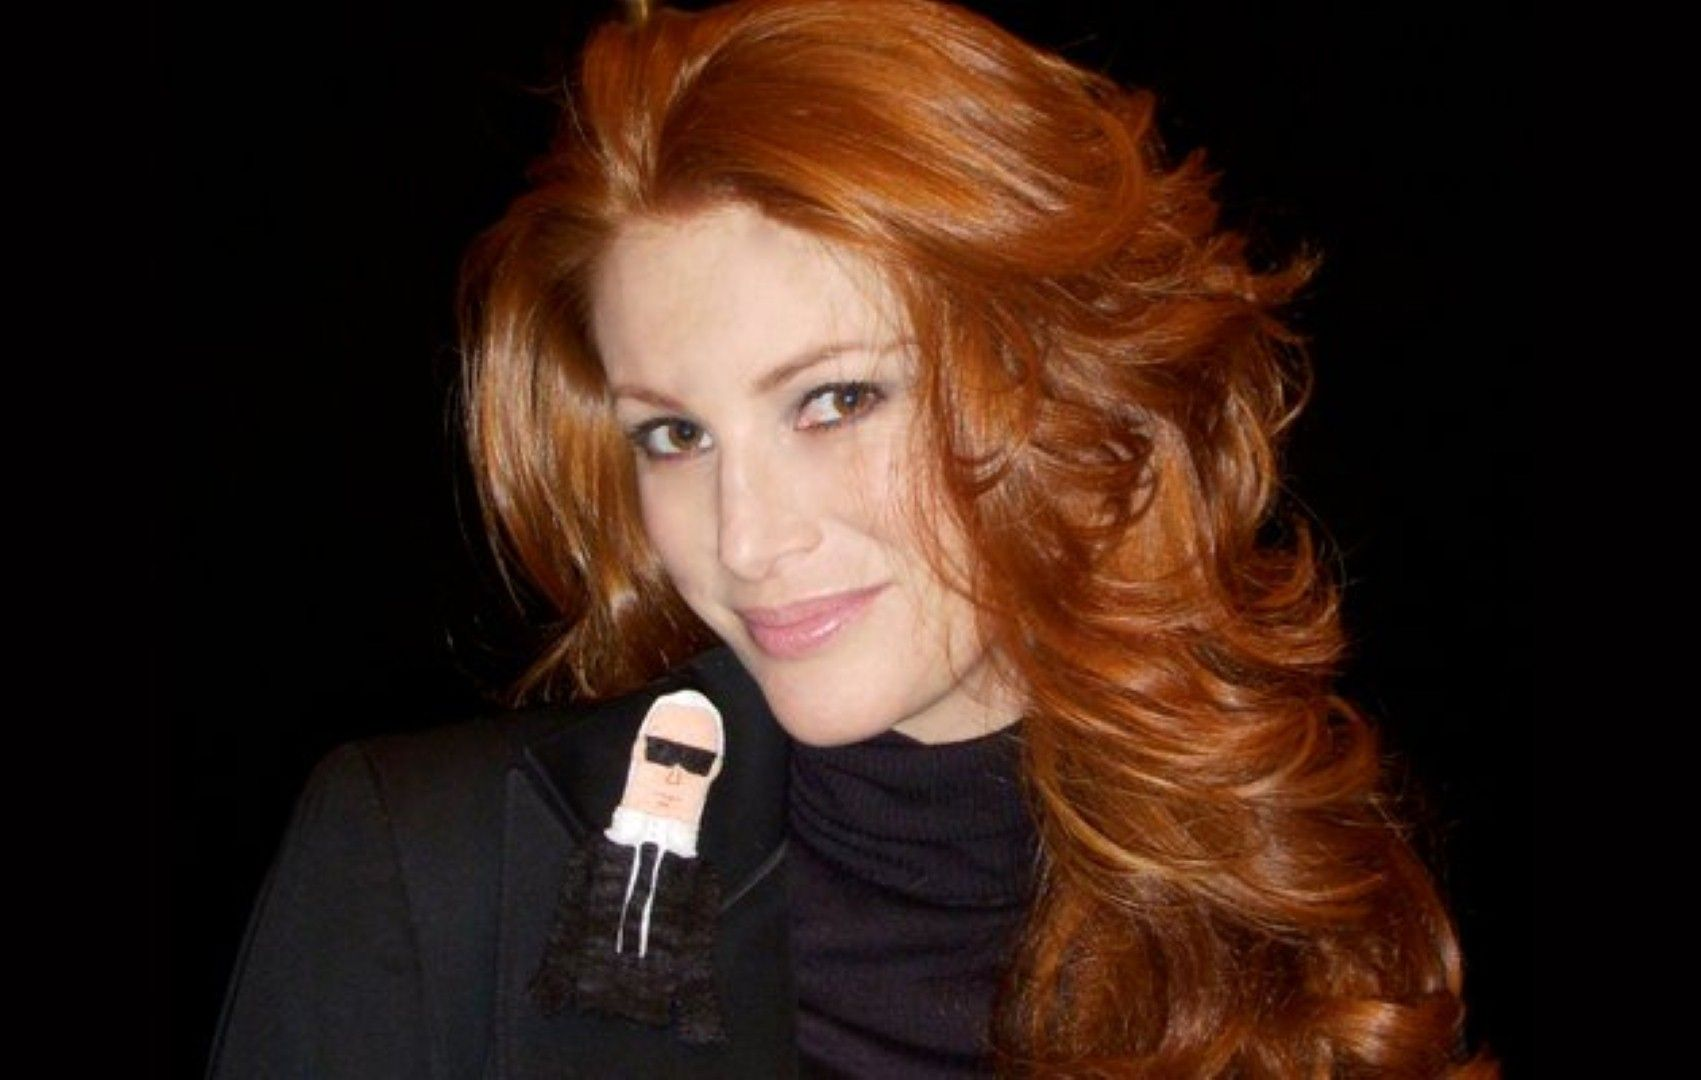 beautiful celebrity redhead: angie everhart | celeberity style